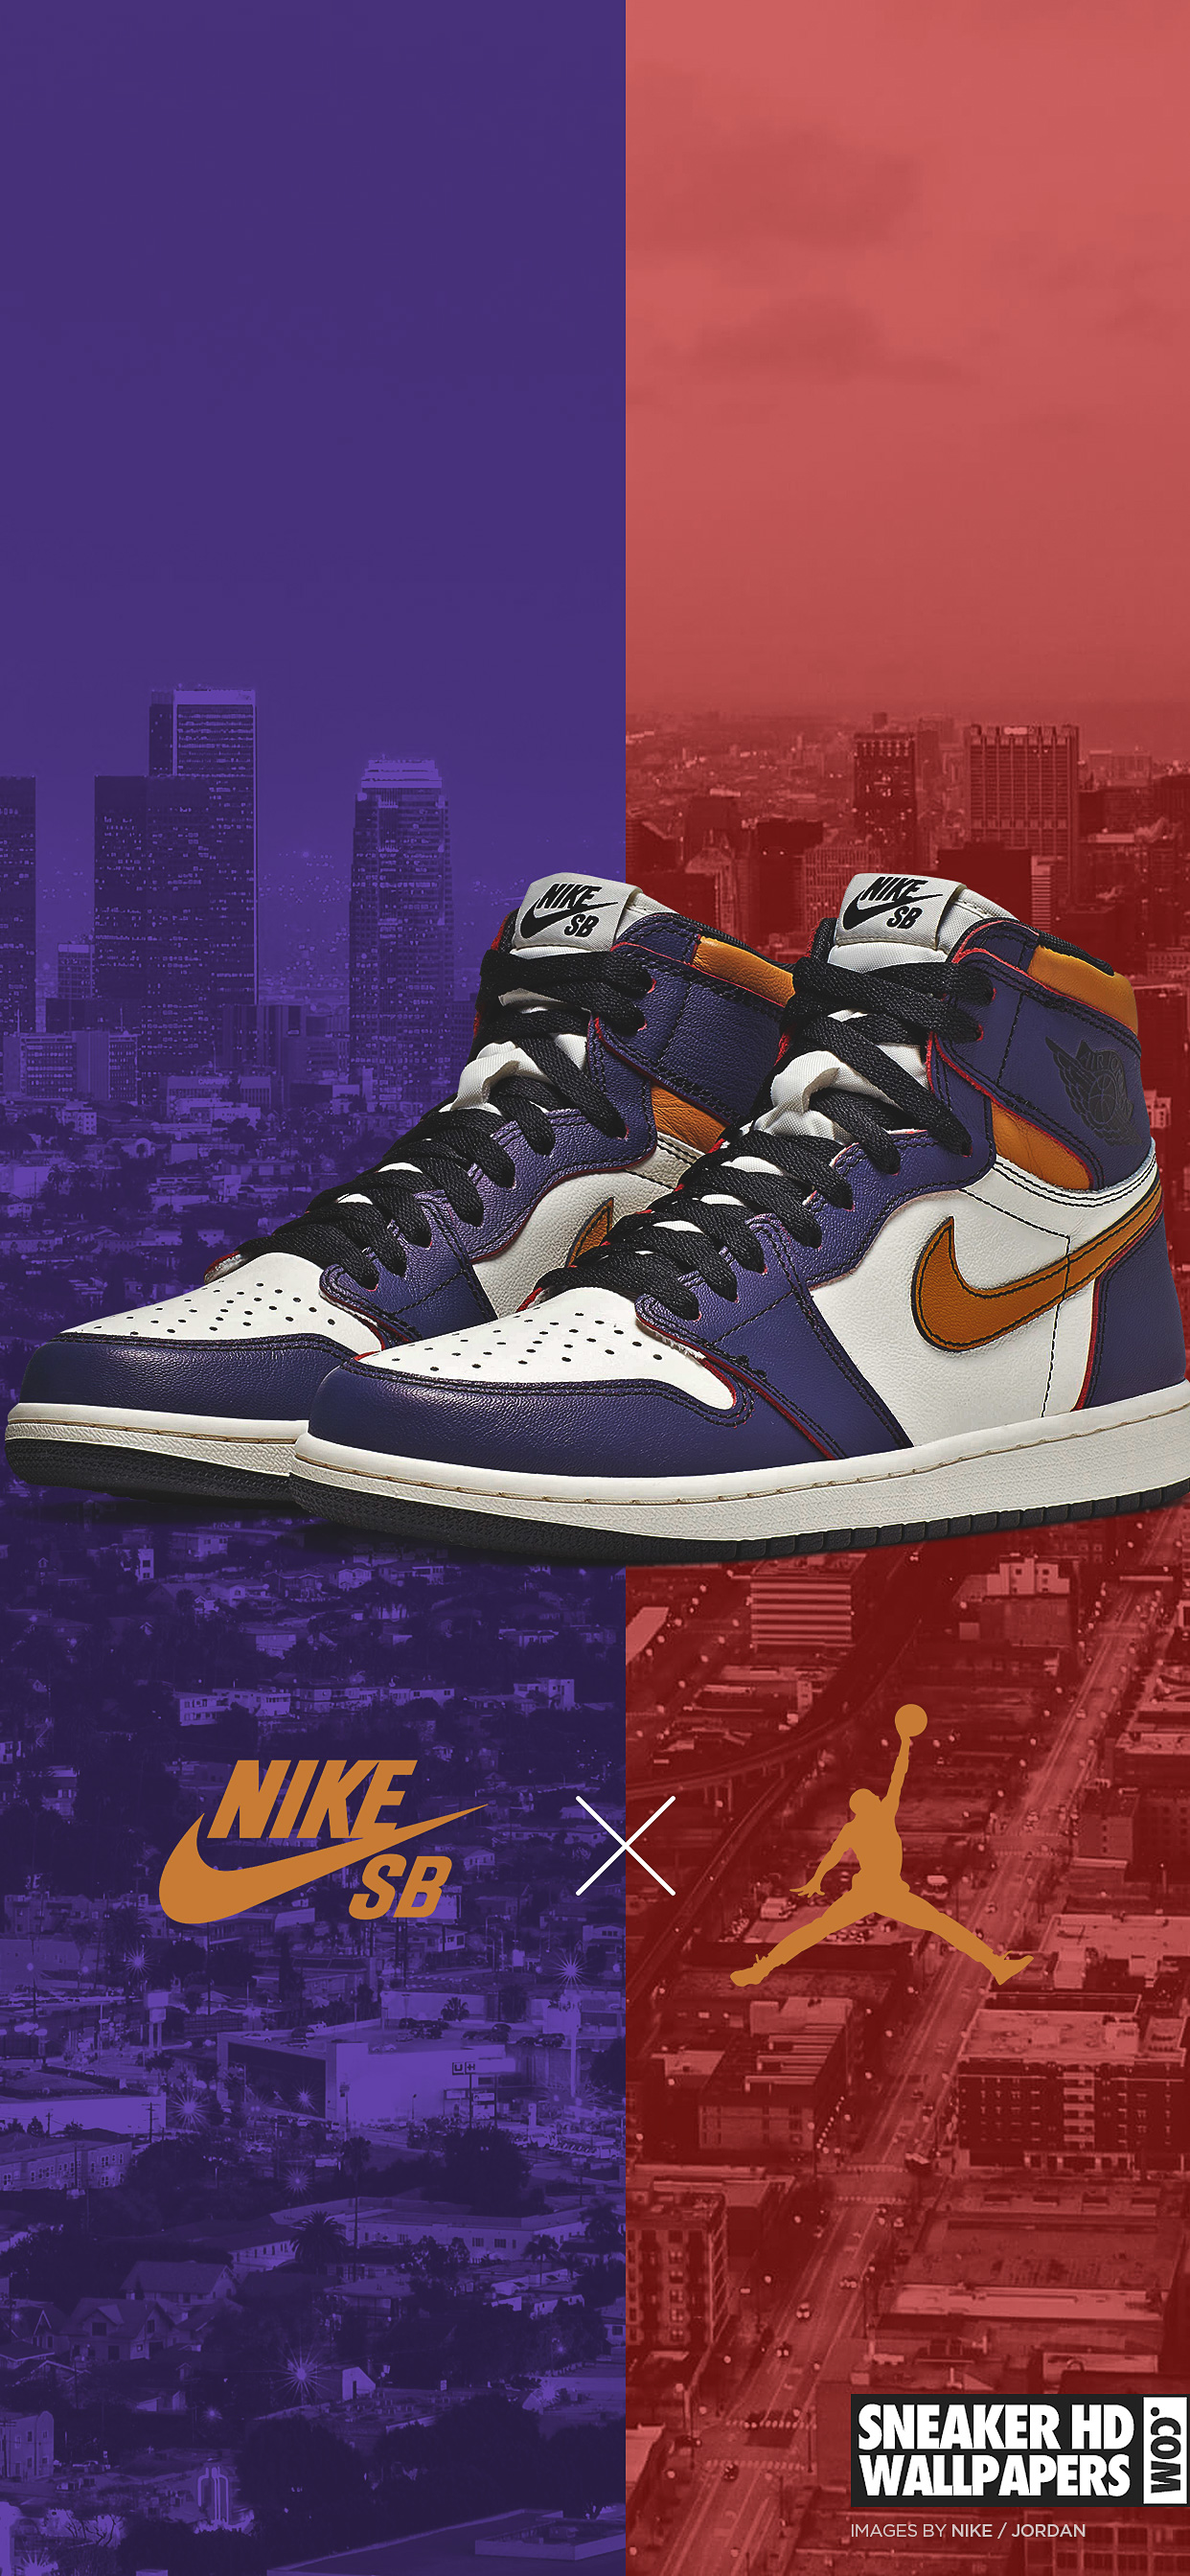 Sneakerhdwallpaperscom Your Favorite Sneakers In Hd And Mobile